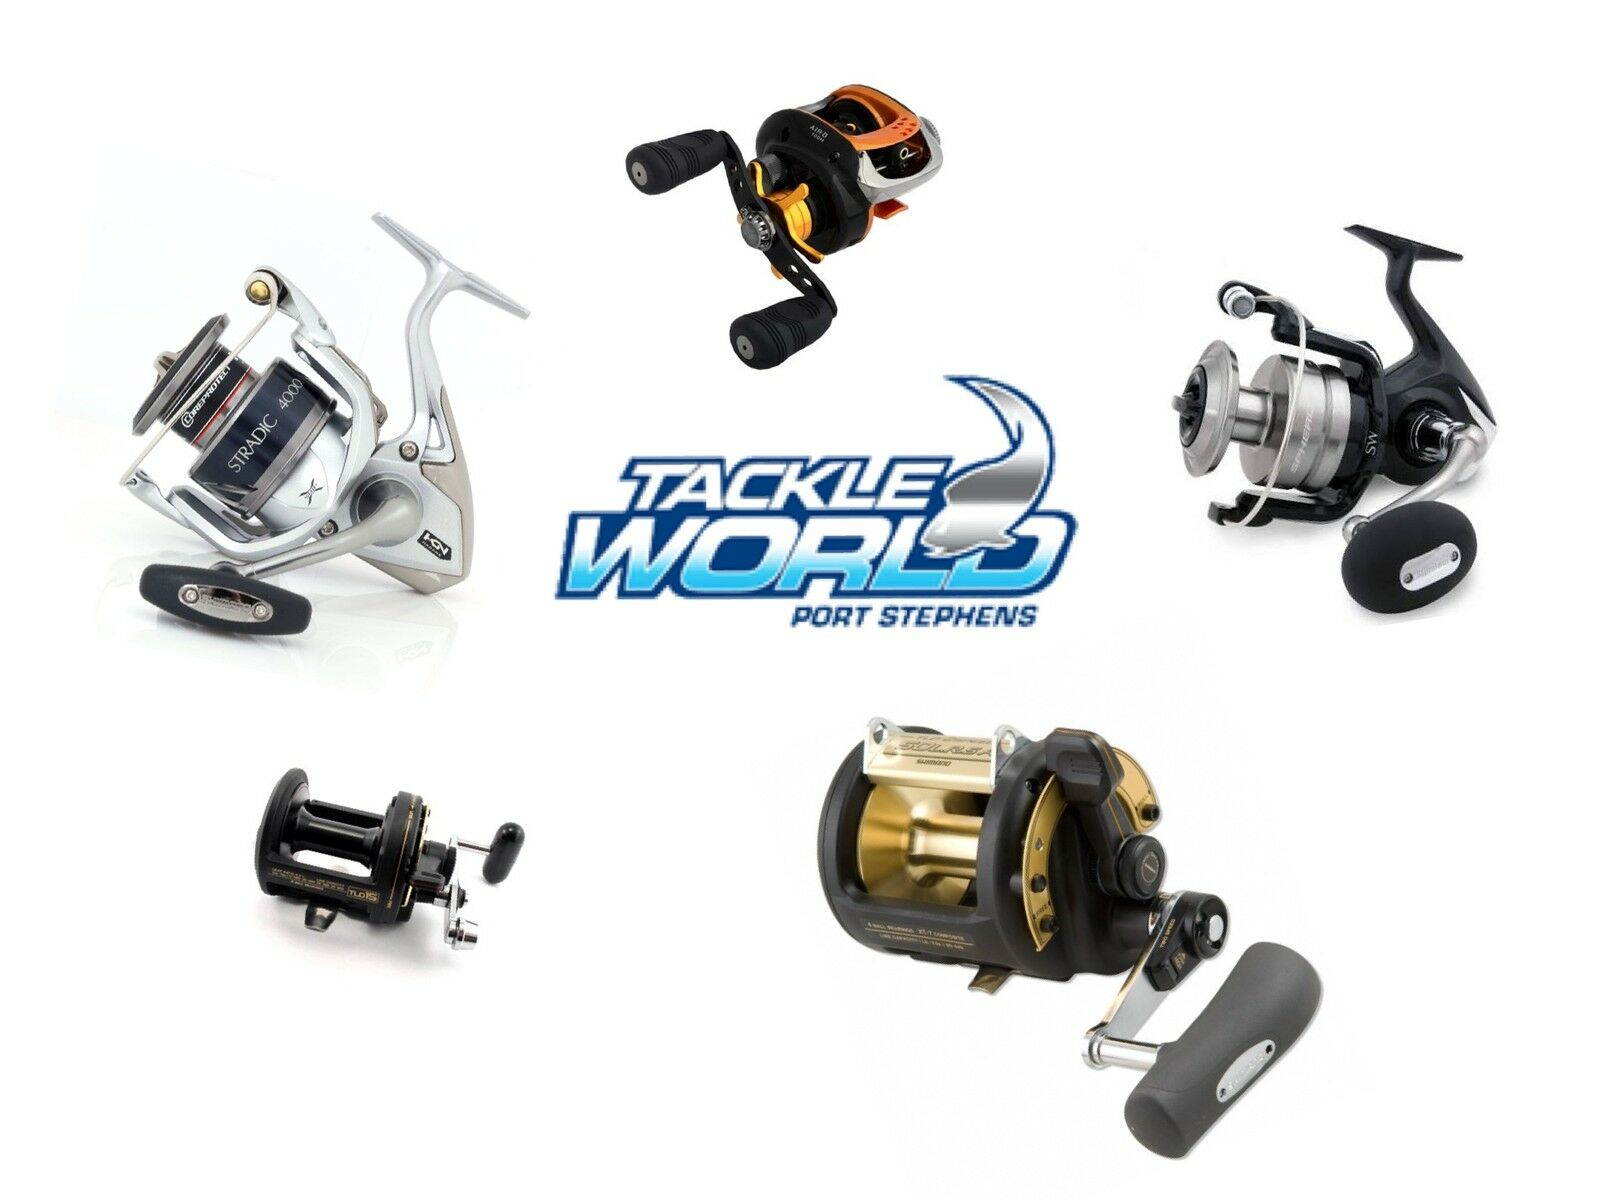 TACKLE WORLD PORT STEPHENS